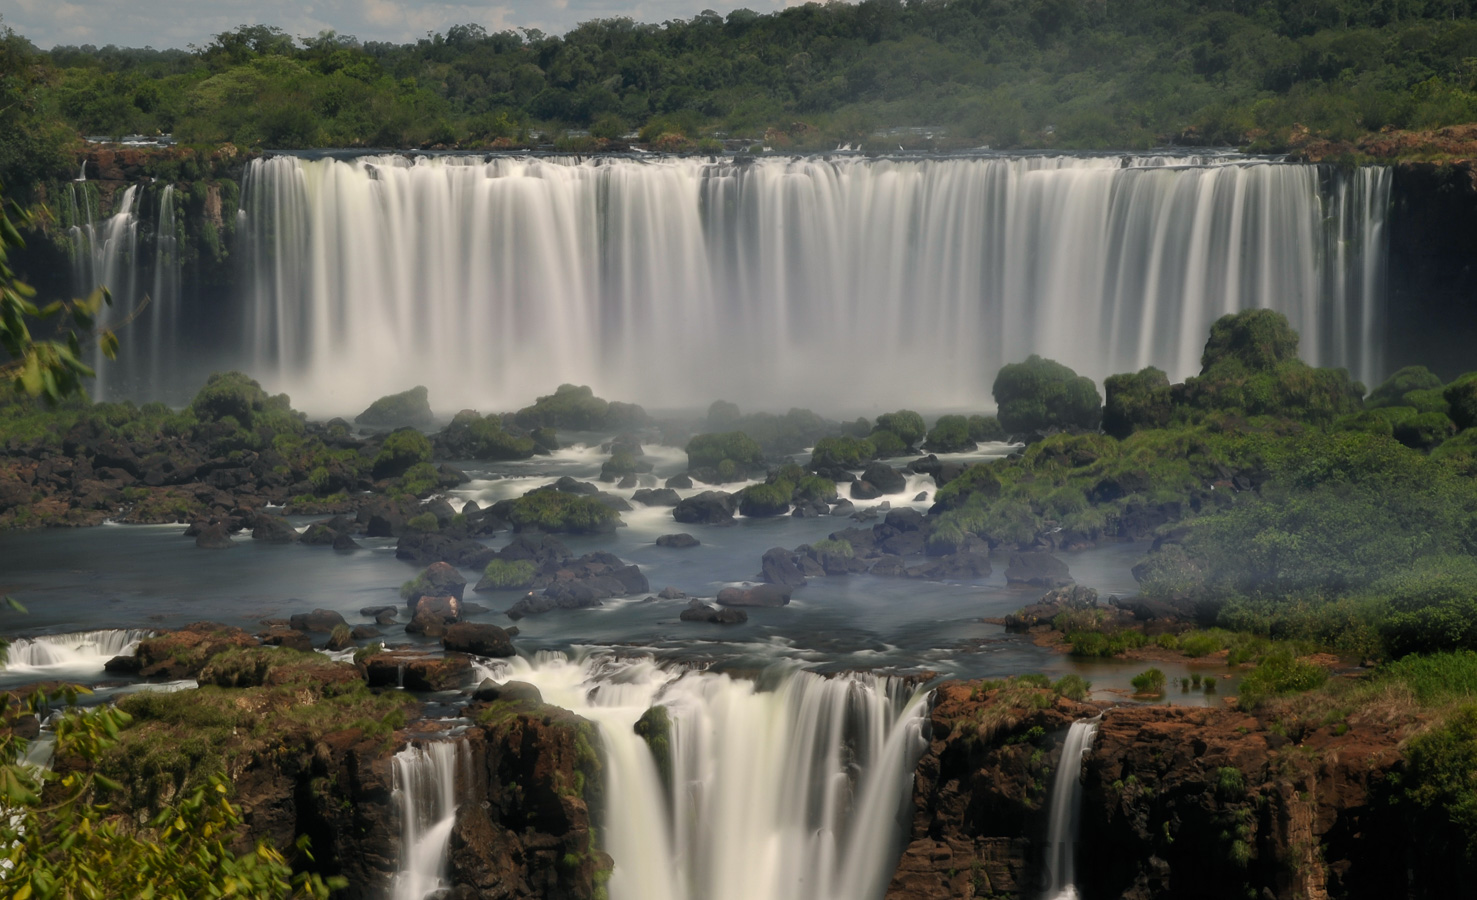 Cataratas del Iguazu [92 mm, 13.0 sec at f / 22, ISO 200]